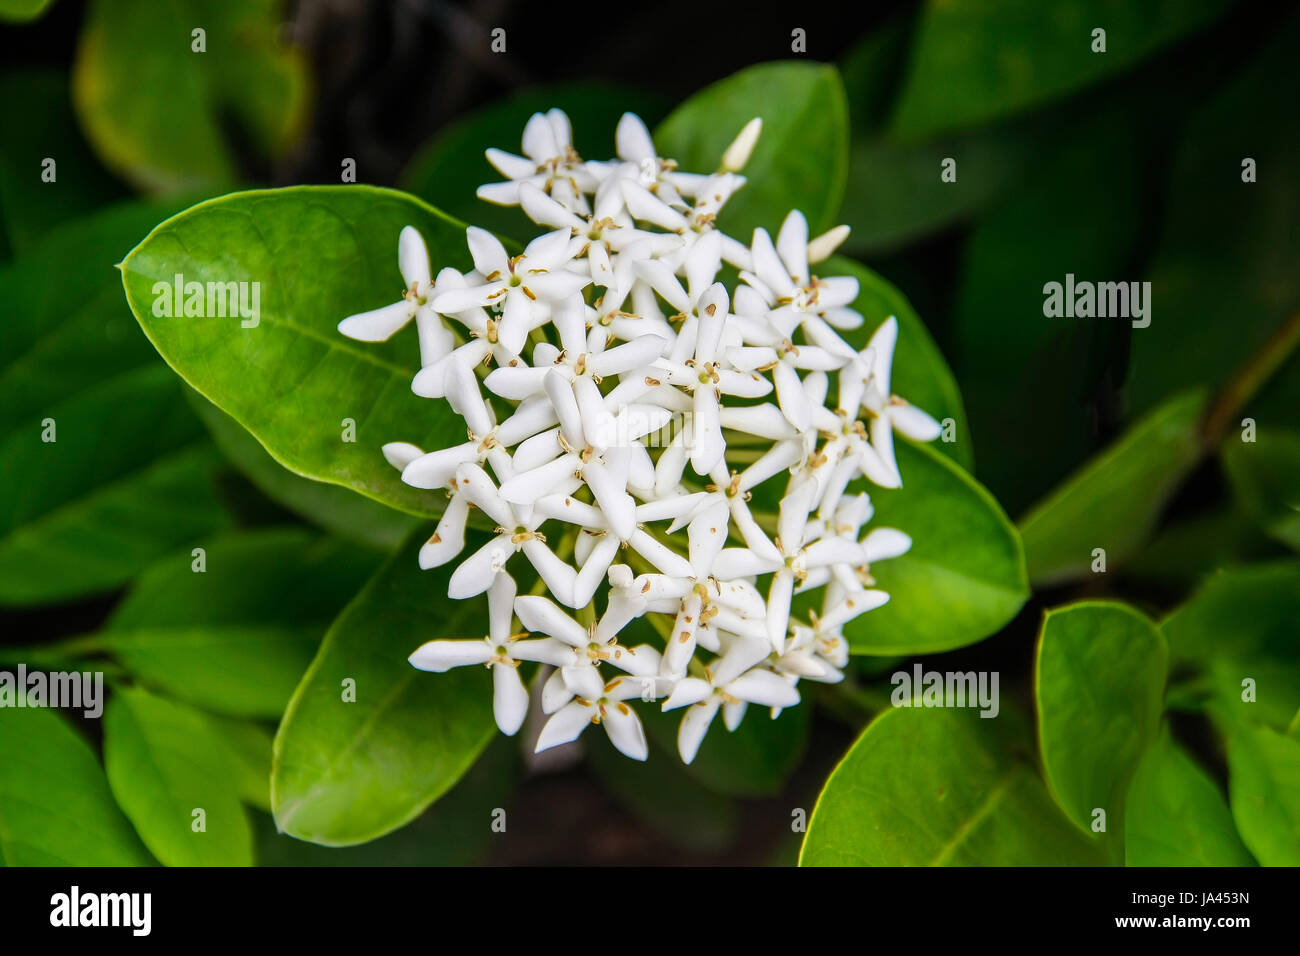 West indian jasmine stock photos west indian jasmine stock images beautiful bouquet of white ixoras flower west indian jasmine flower on its plant stock izmirmasajfo